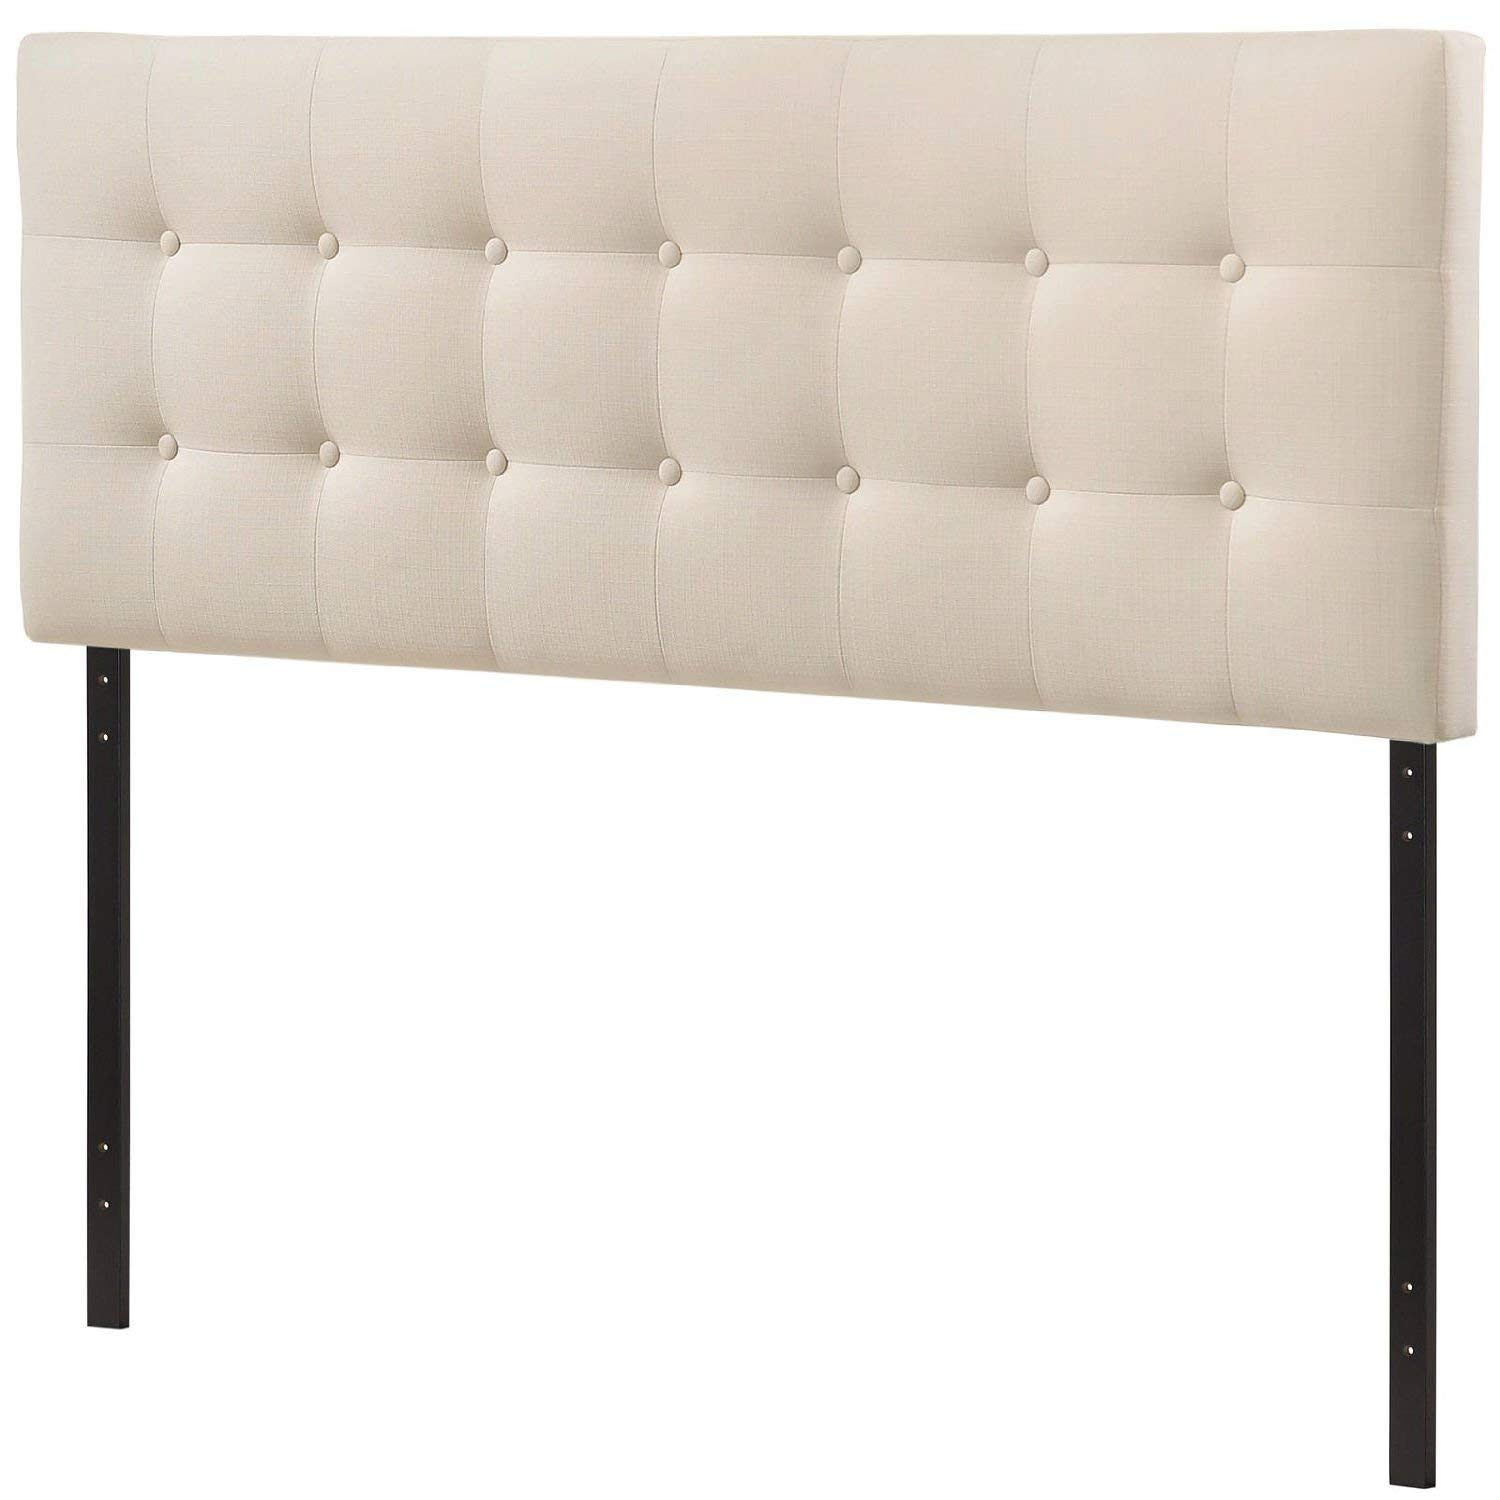 StarSun Depot Full Size Ivory Fabric Upholstered Button-Tufted Headboard